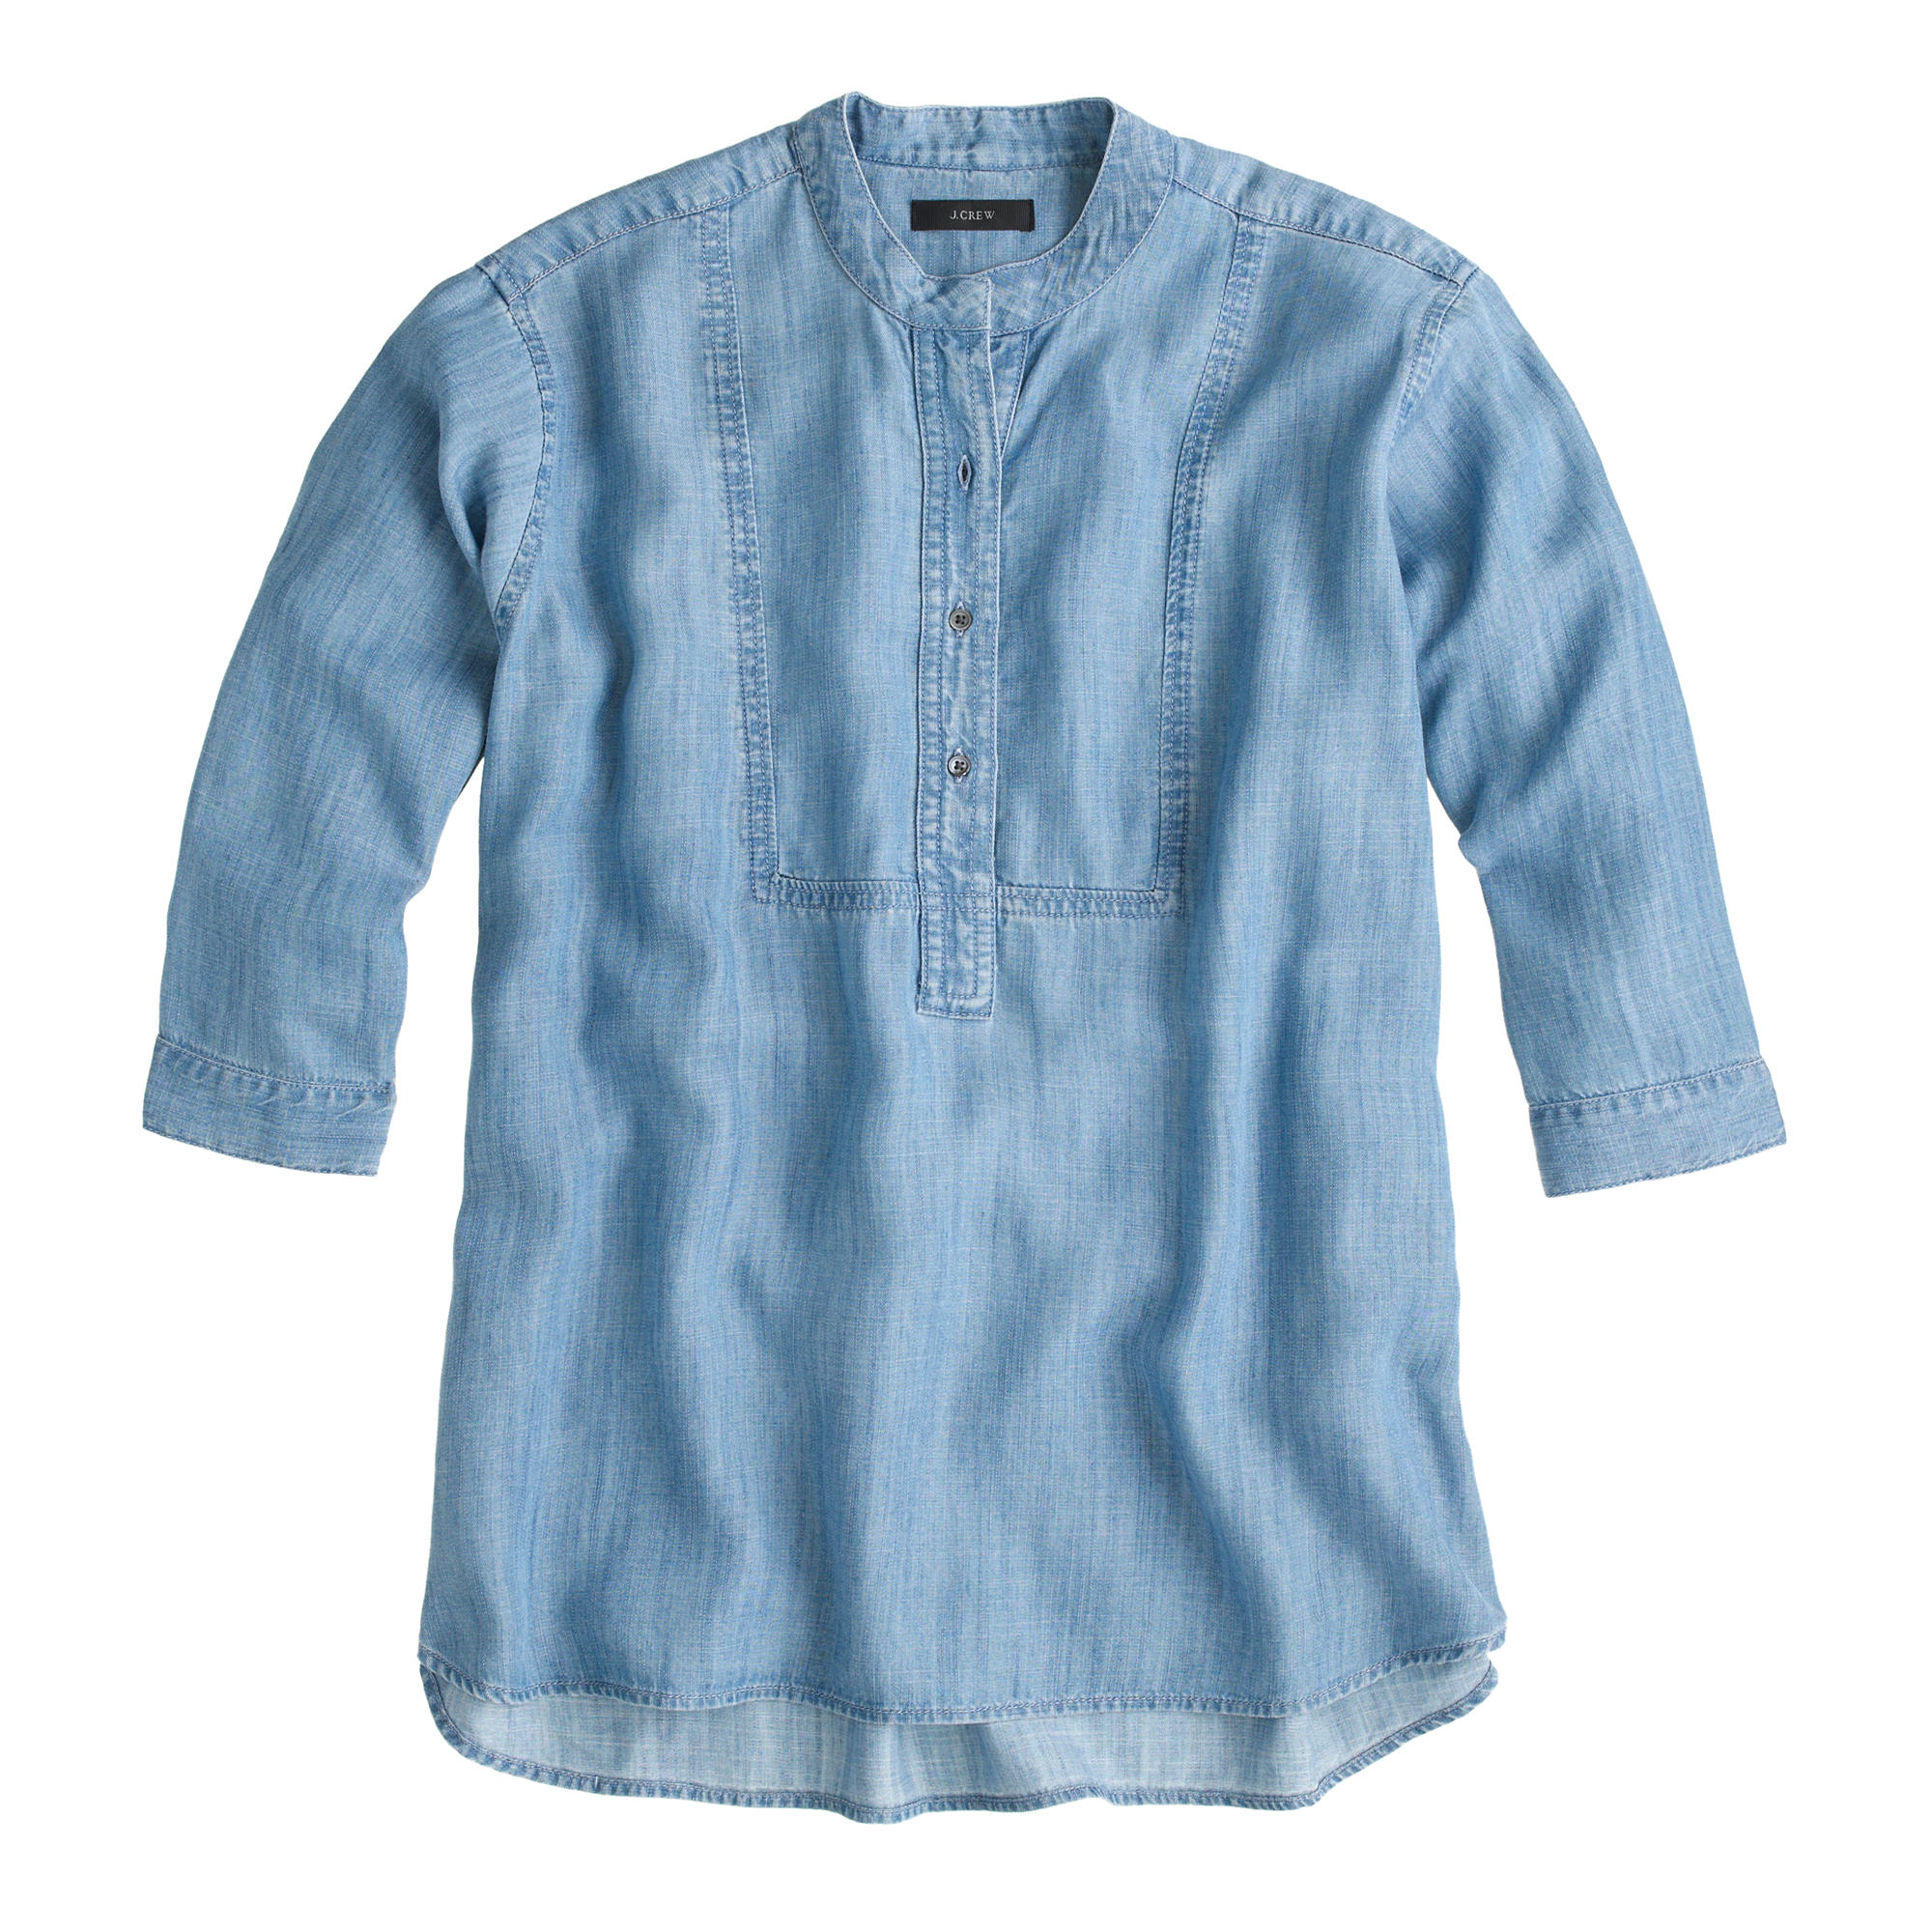 Drapey chambray popover shirt women shirts j crew for Chambray shirt women